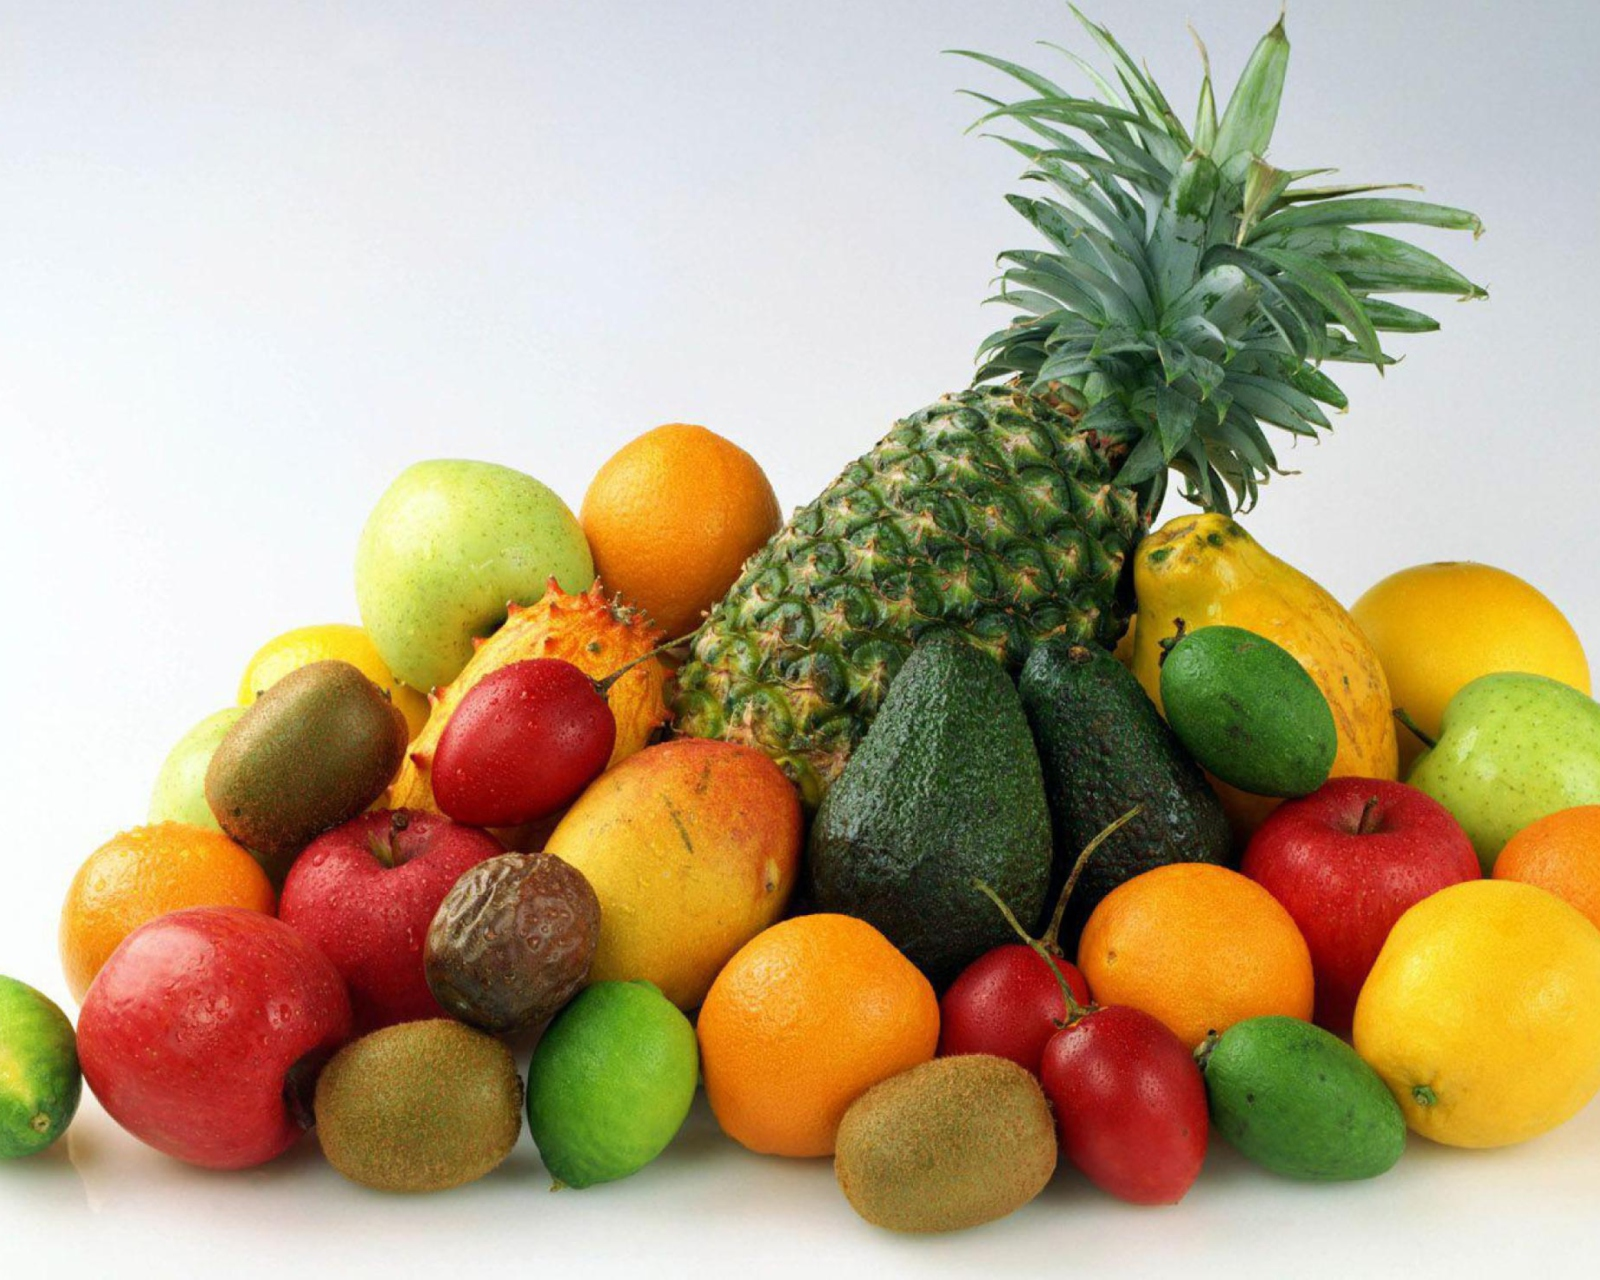 Tropic Fruit wallpaper 1600x1280